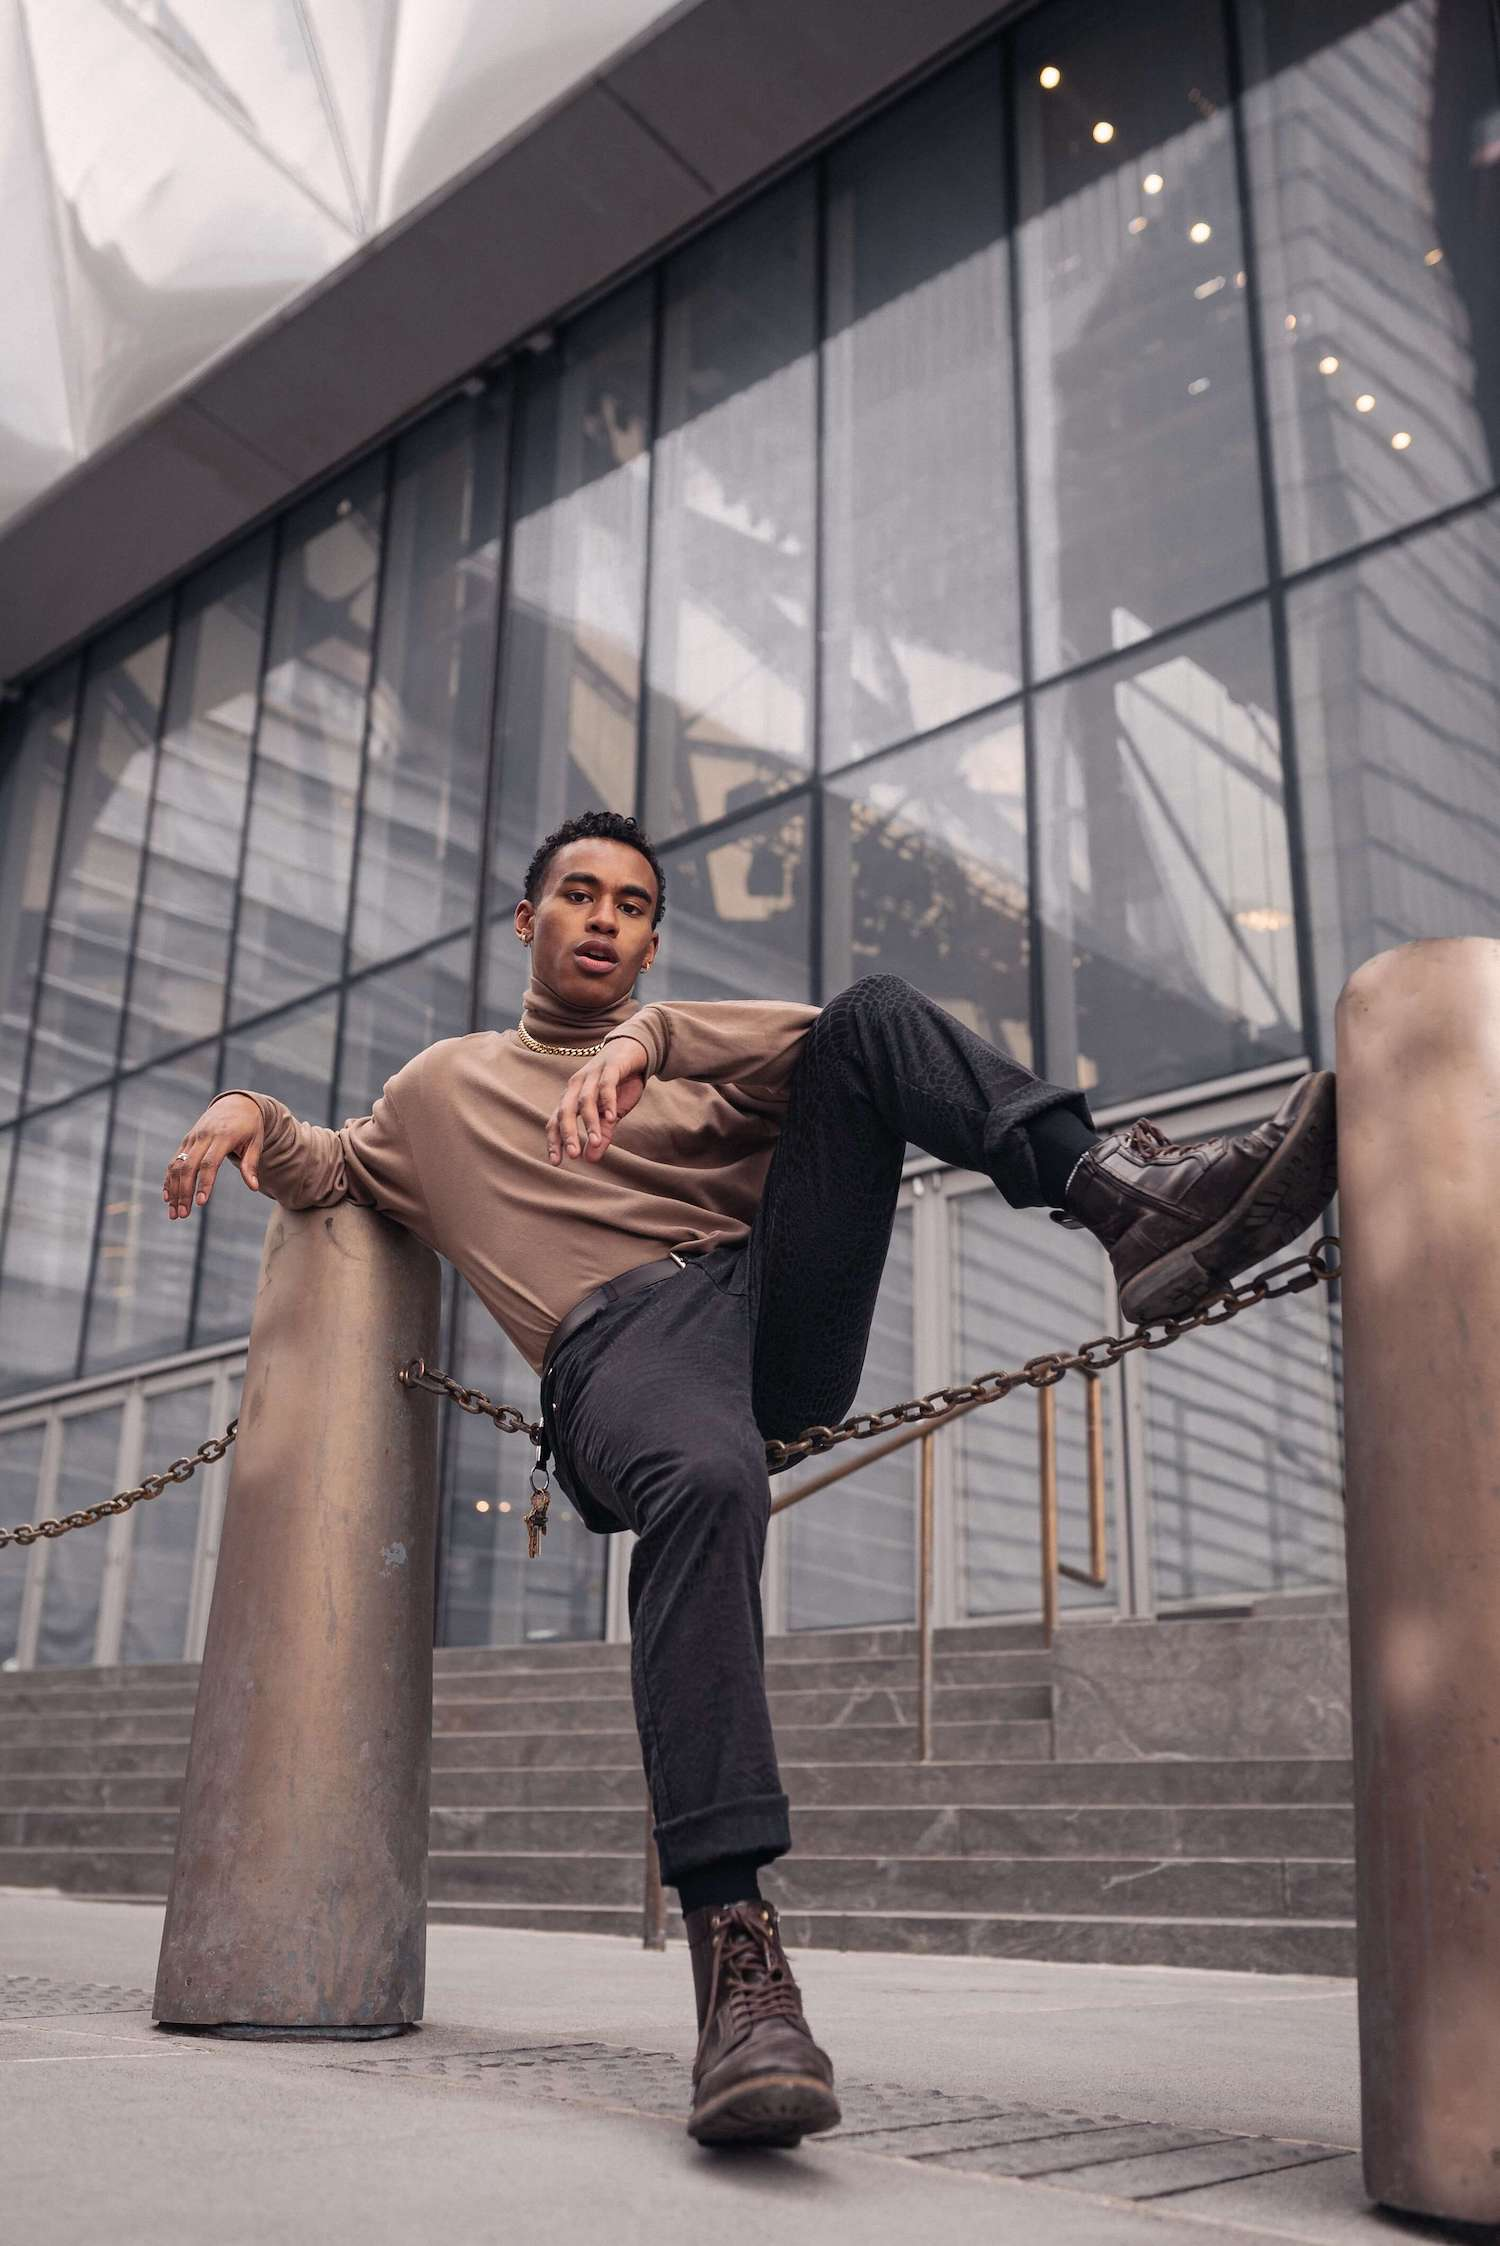 Male model sitting on a chain, glass building on the background.